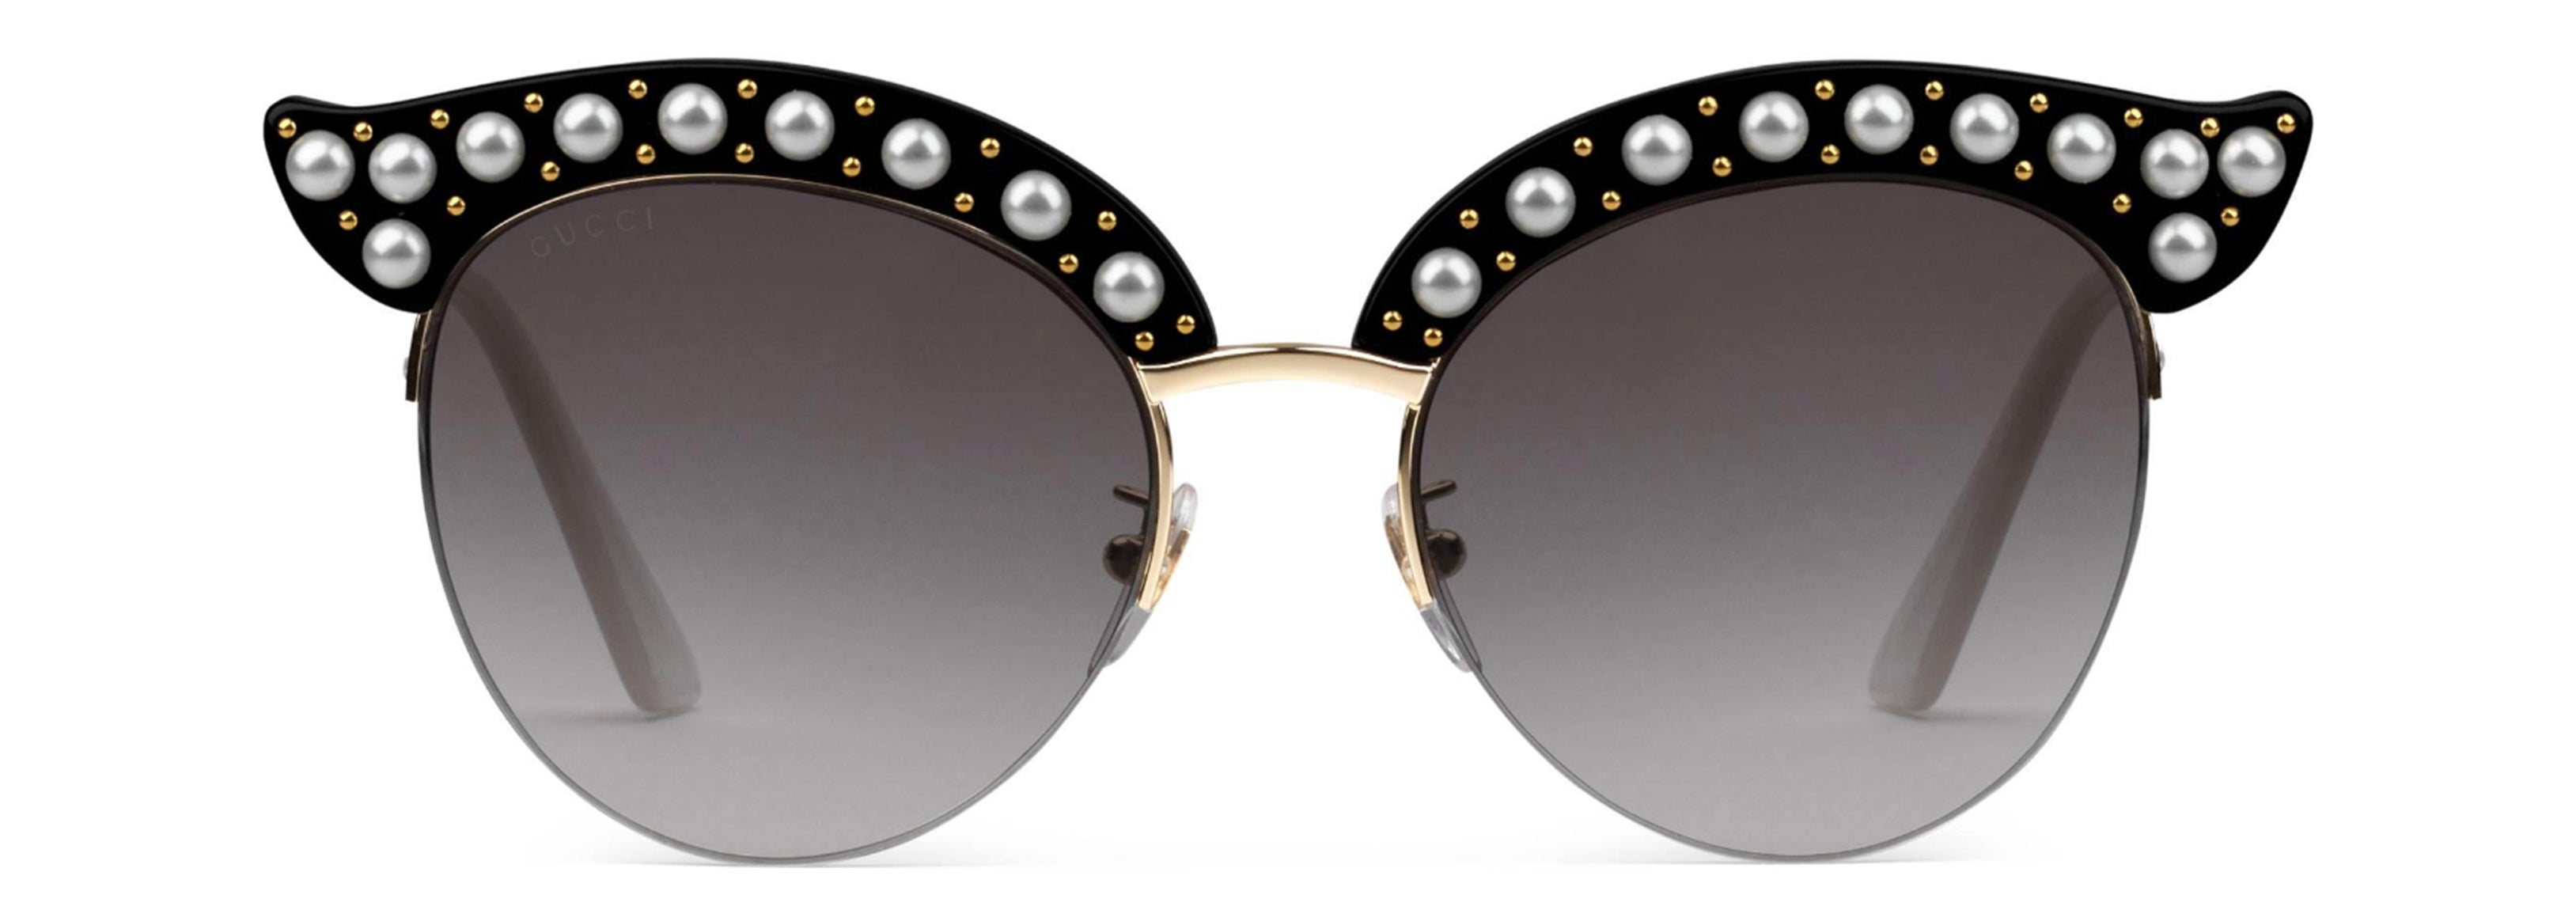 GUCCI-CAT-EYE-ACETATE-SUNGLASSES